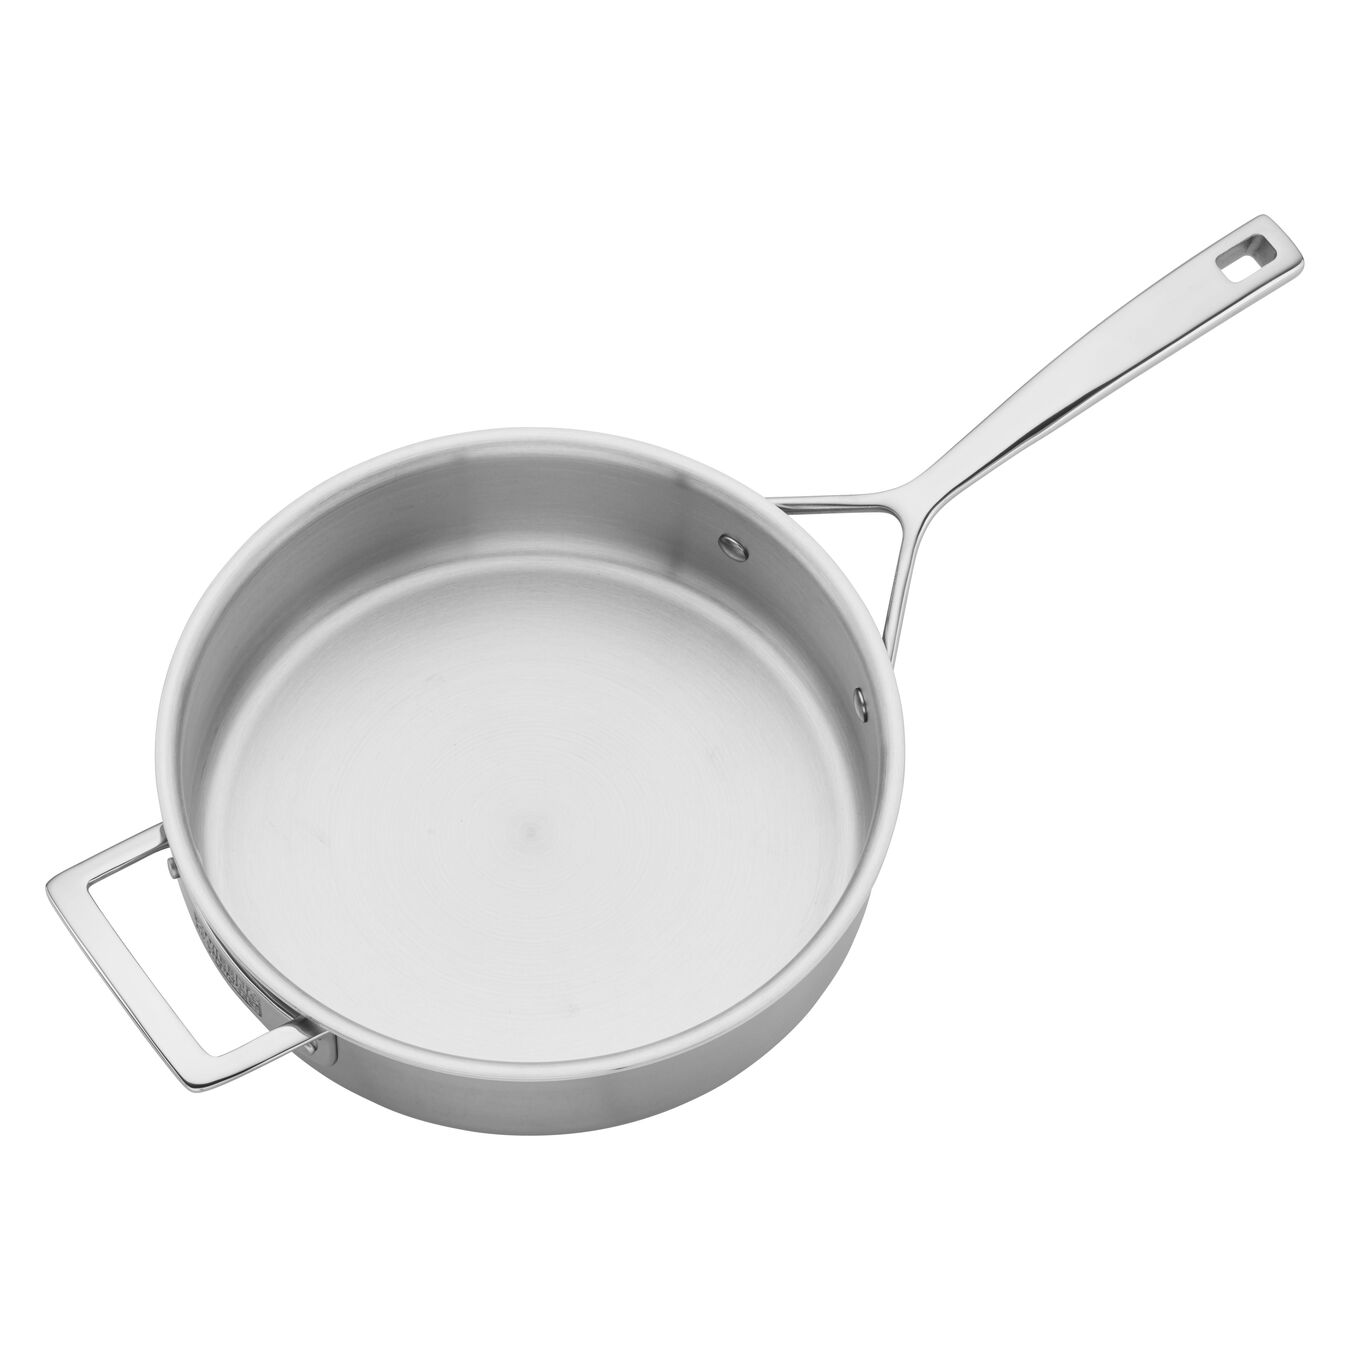 7 Piece 18/10 Stainless Steel Cookware set,,large 6